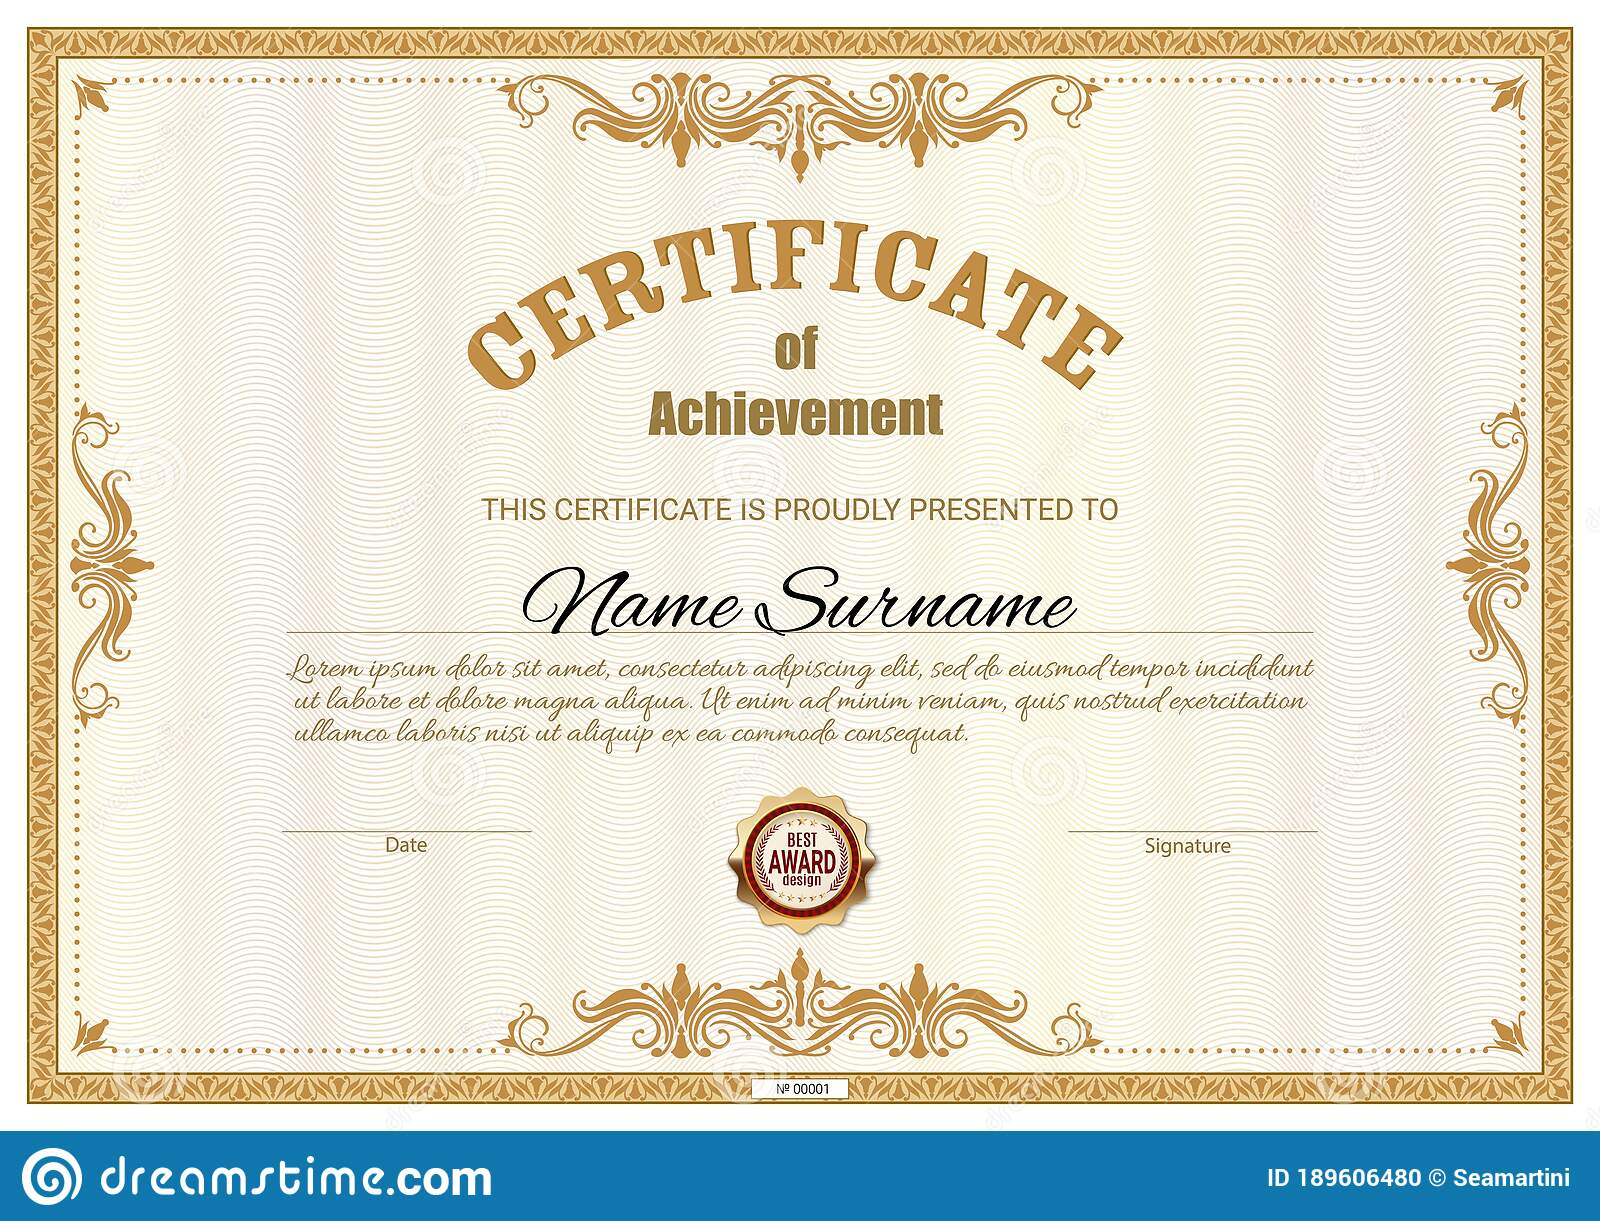 Free Award Certificate Template from thumbs.dreamstime.com